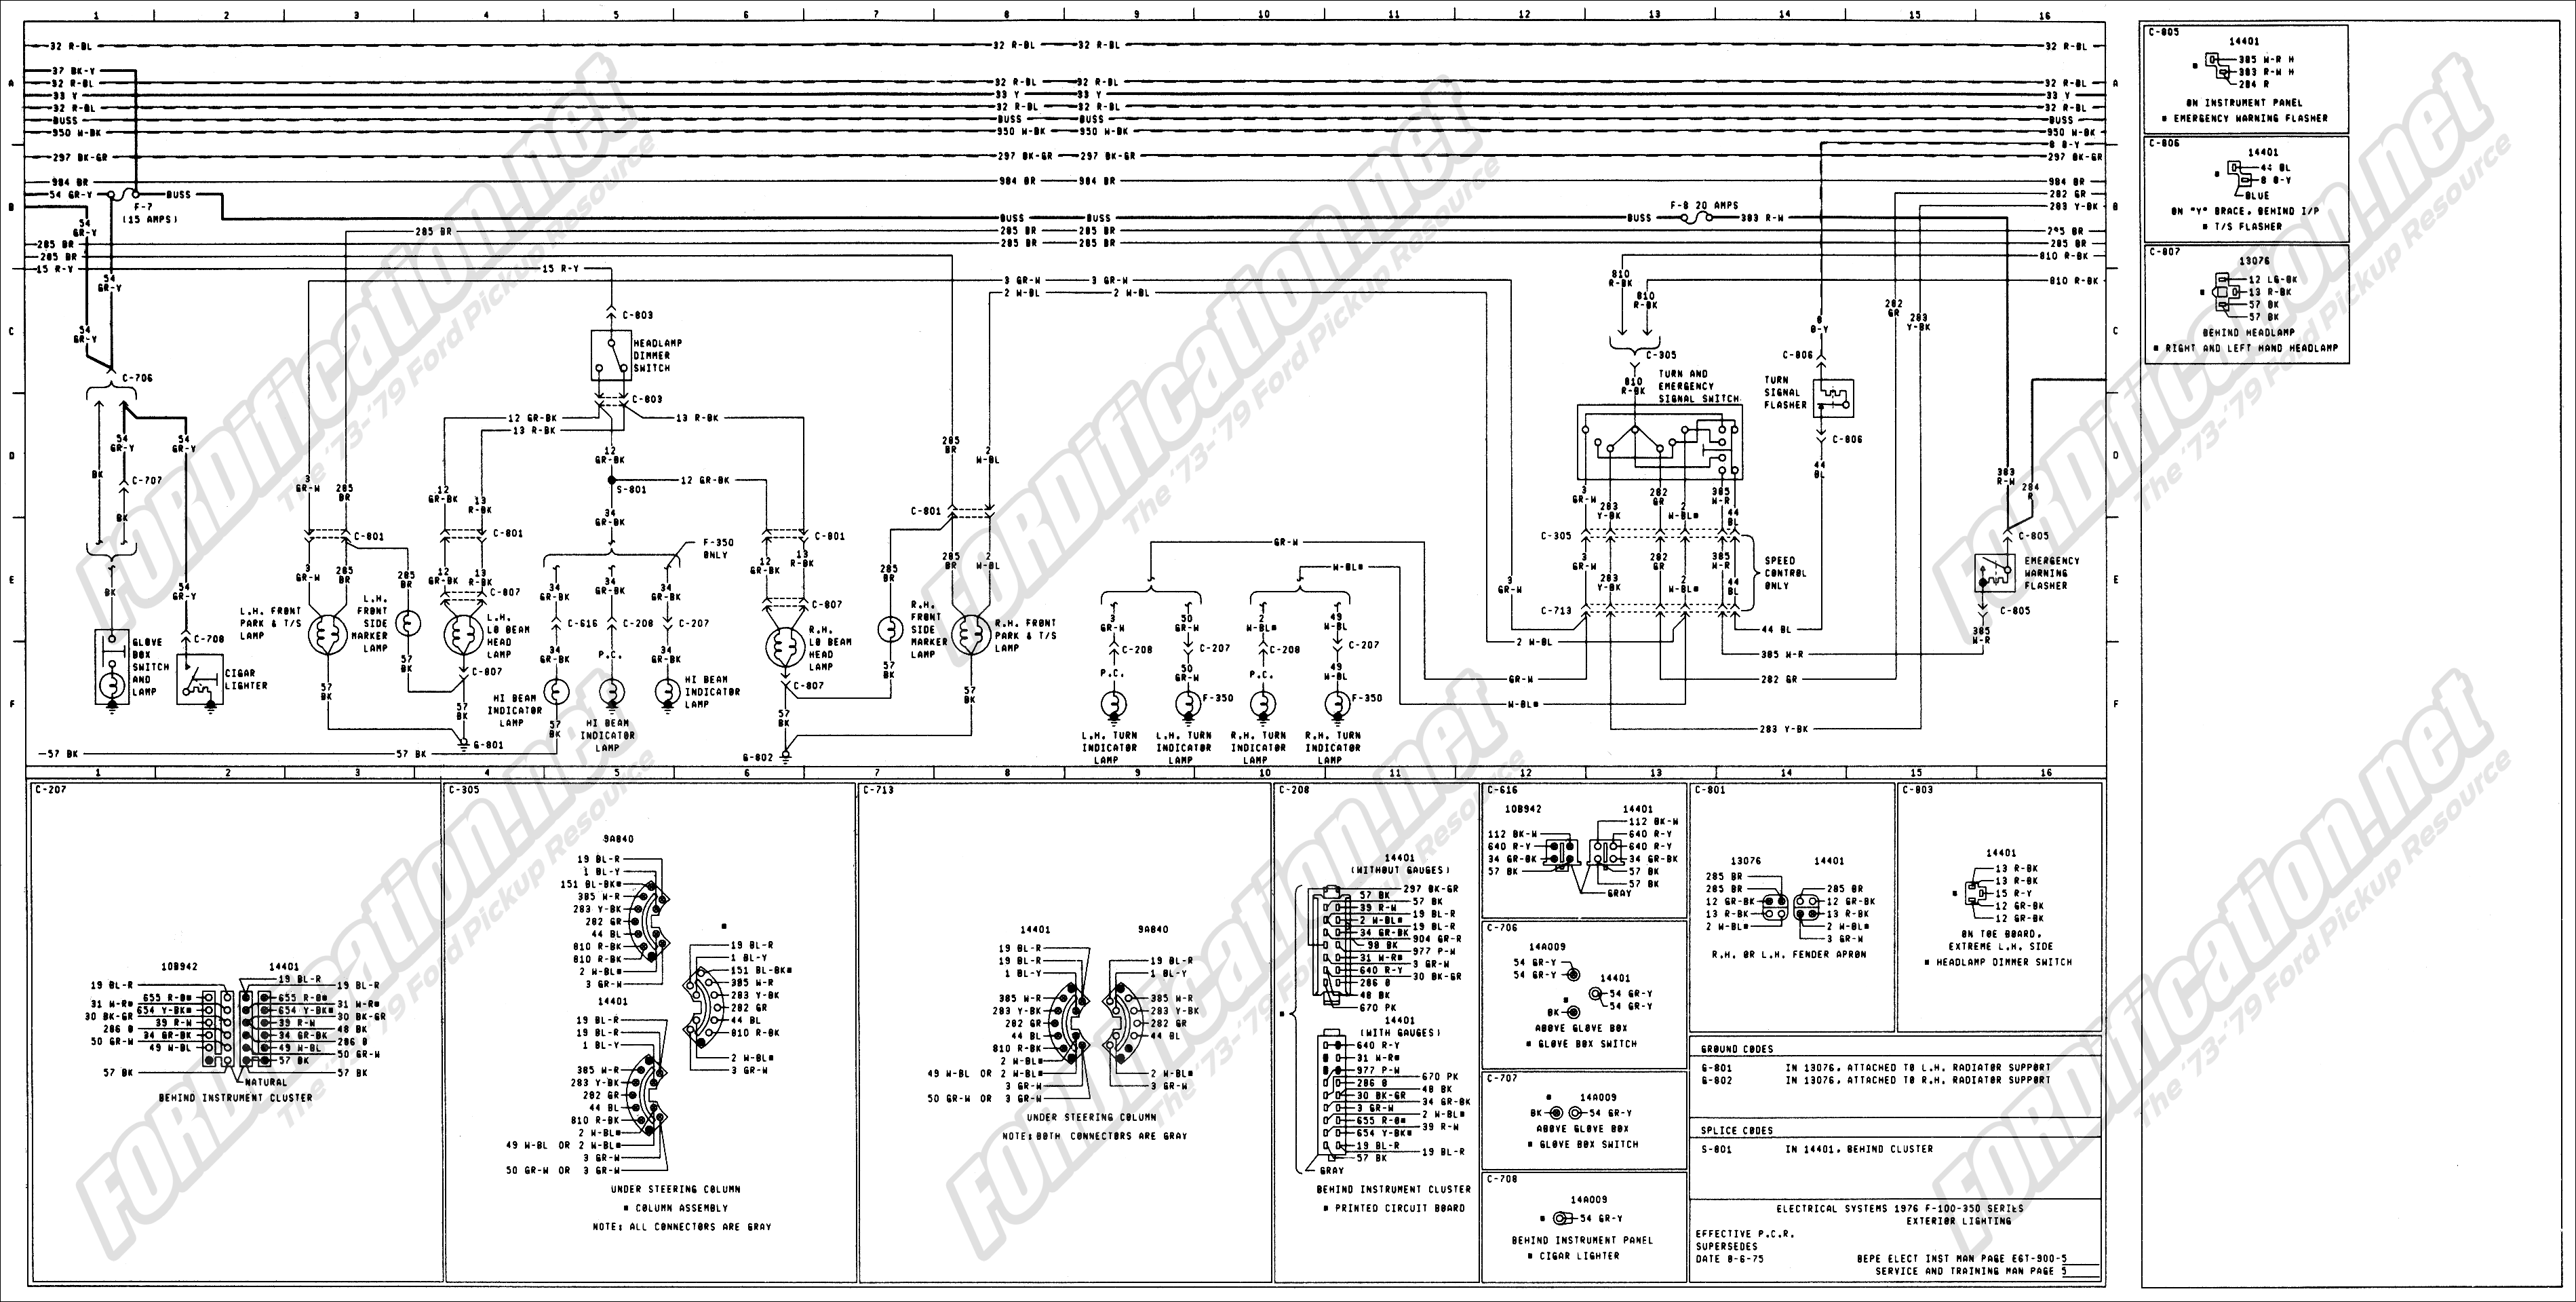 ignition wiring diagram for 1977 f150 trusted wiring diagrams u2022 rh shlnk co 2000 Ford F-250 Fuse Diagram 2003 Ford F-250 Wiring Diagram